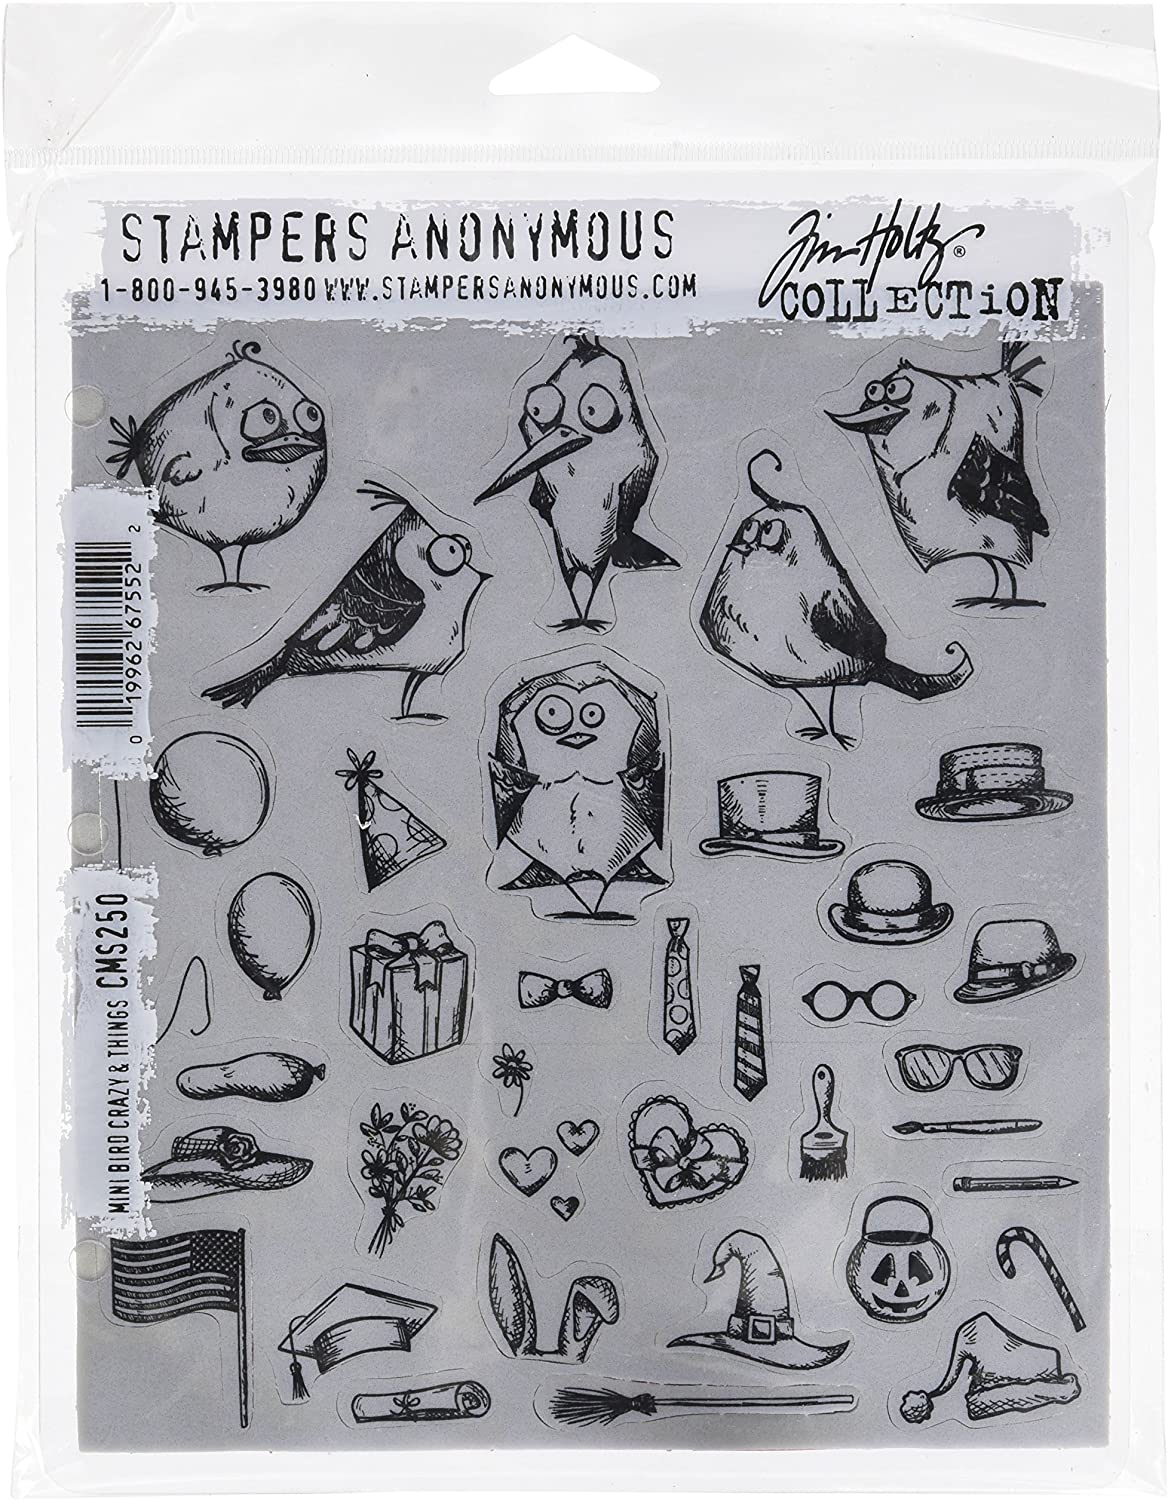 Mehrfarbig Stampers Anonymous Tim Holtz Klebestempel 7 x 8.5 Zoll Mini Verr/ückte V/ögel und andere Dinge 24.5 x 19 x 0.5 cm Synthetic Material